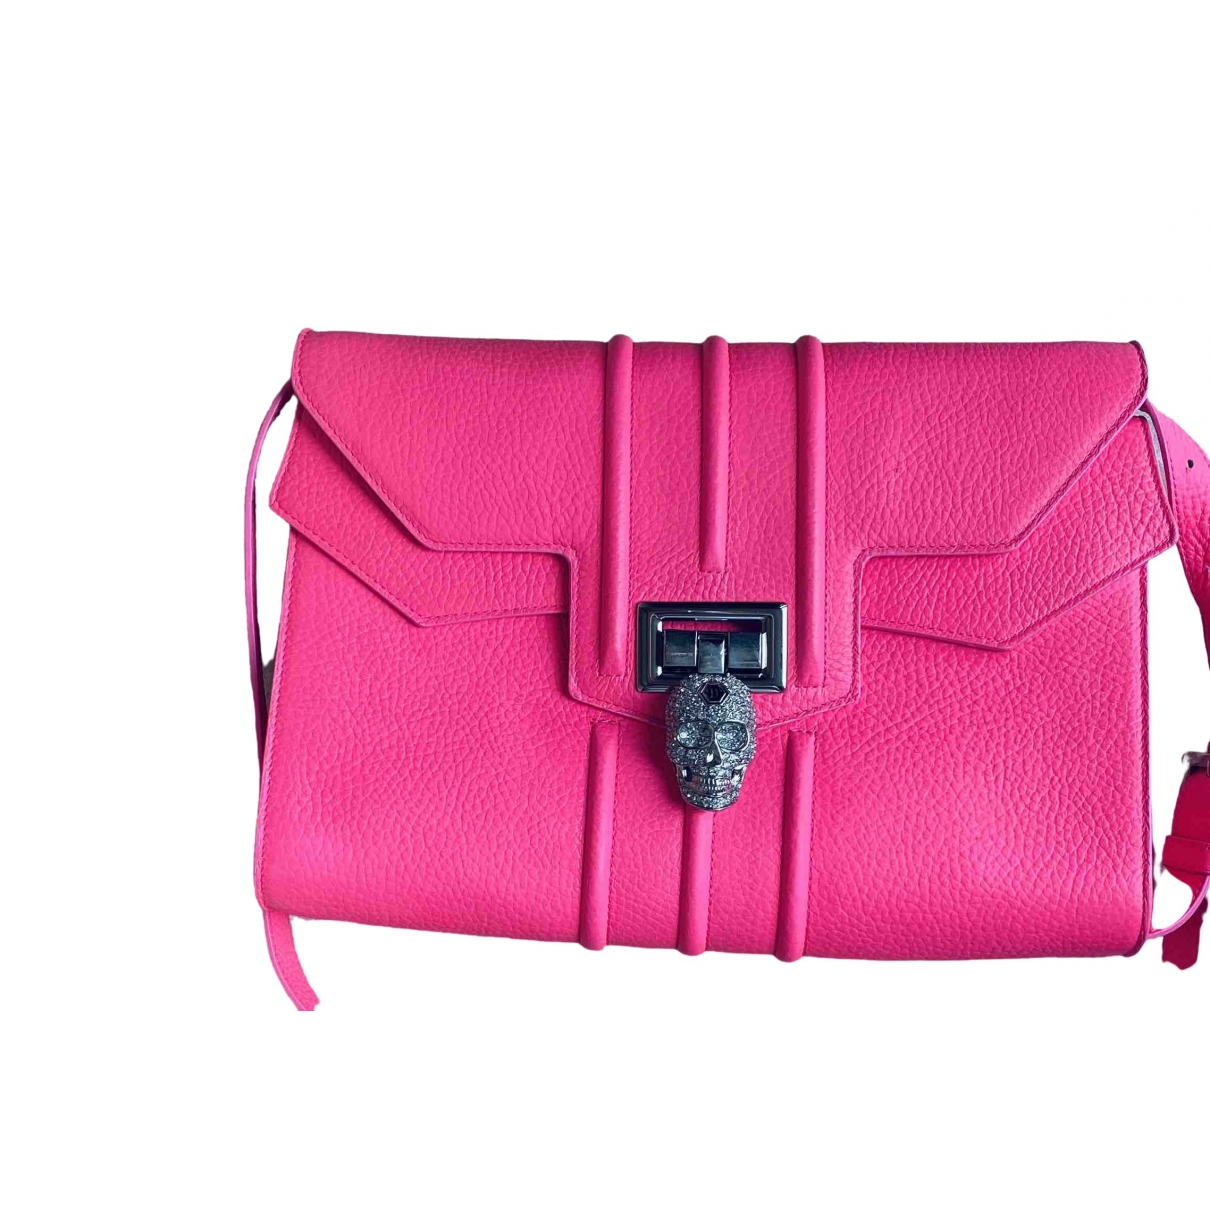 Philipp Plein \N Clutch in  Rosa Leder